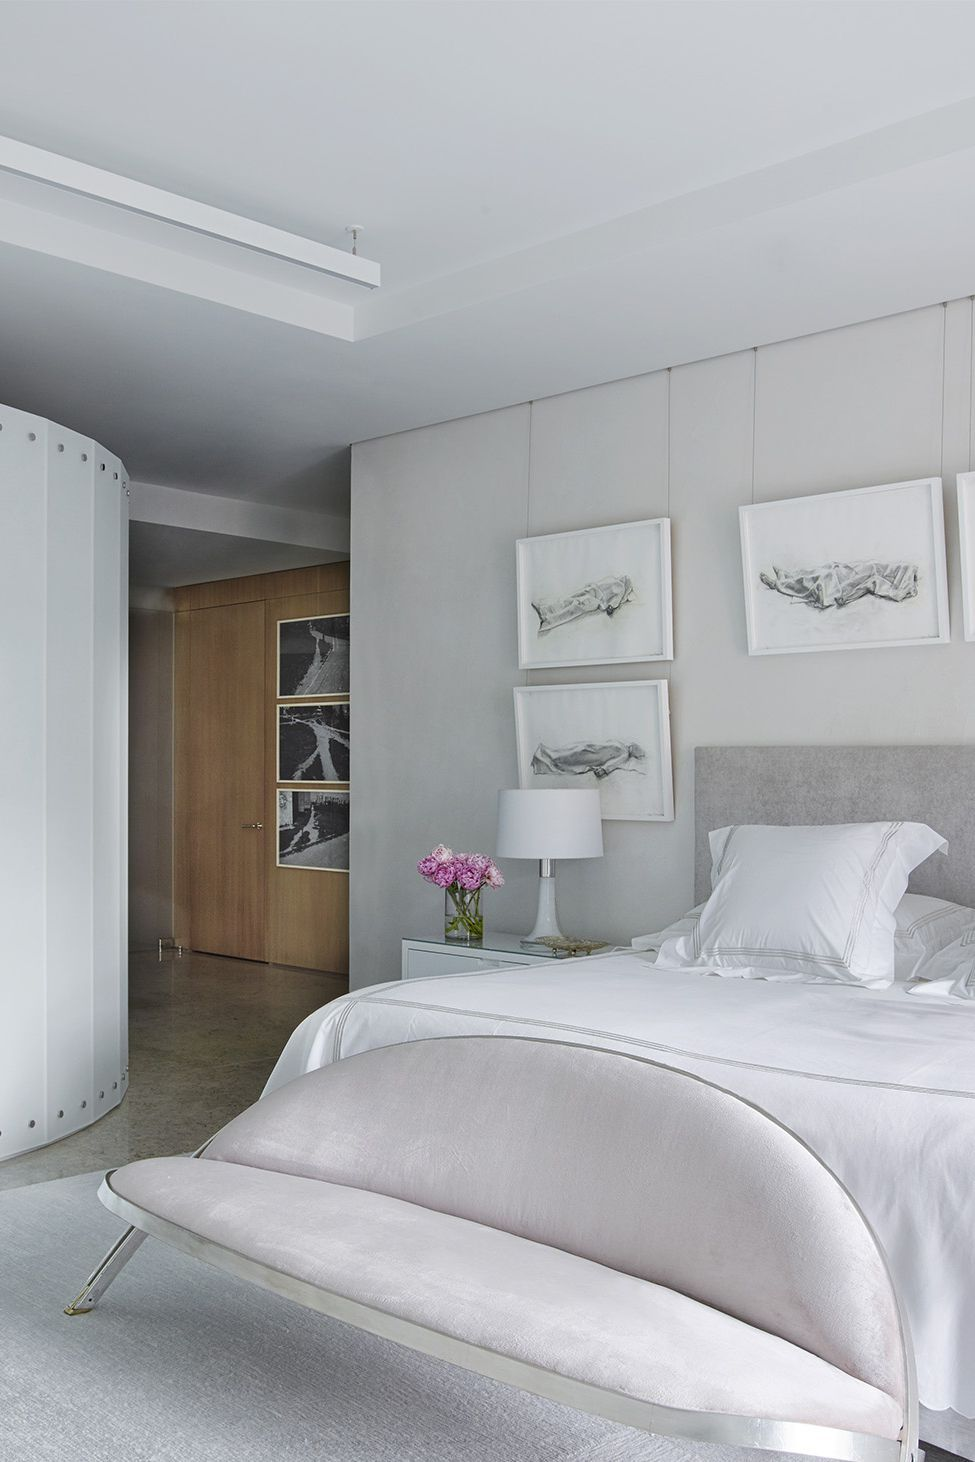 15 Creative Gray And White Bedroom Ideas Gray And White Bedroom Photos